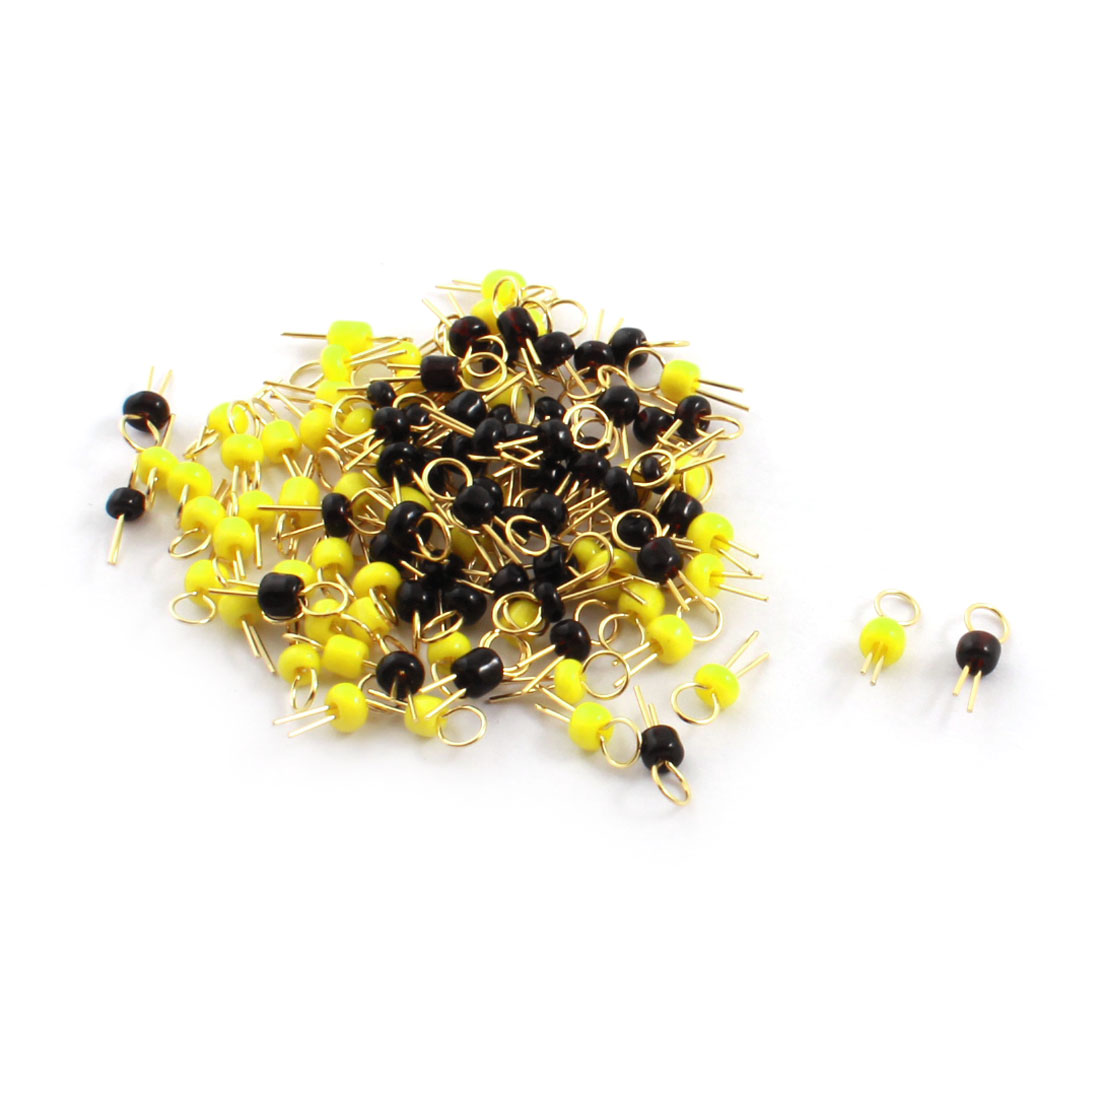 100Pcs Black + Yellow Ceramic Bead 3.2mm Head Dia Gold Tone Copper PCB Test Pin Terminals